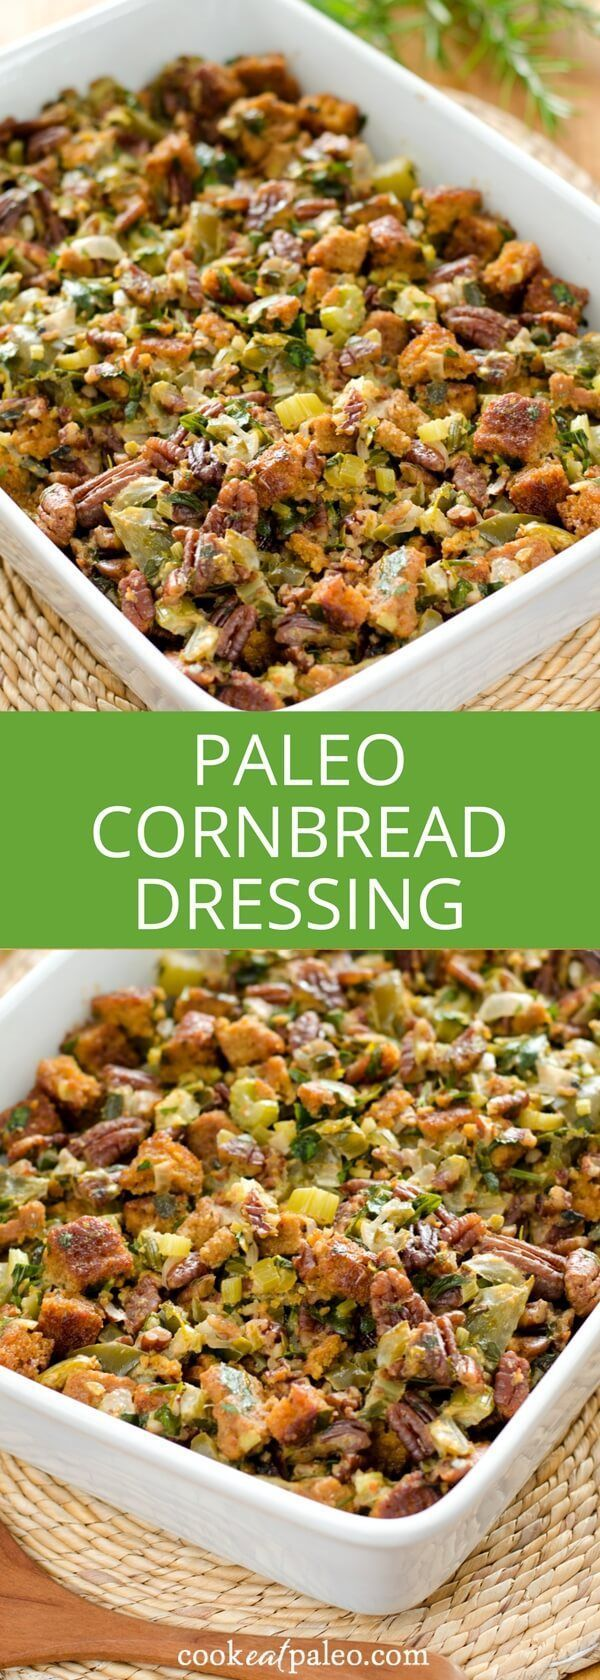 Gluten-free stuffing - this paleo cornbread dressing recipe is grain-free, but full of traditional Thanksgiving holiday flavors. via /cookeatpaleo/